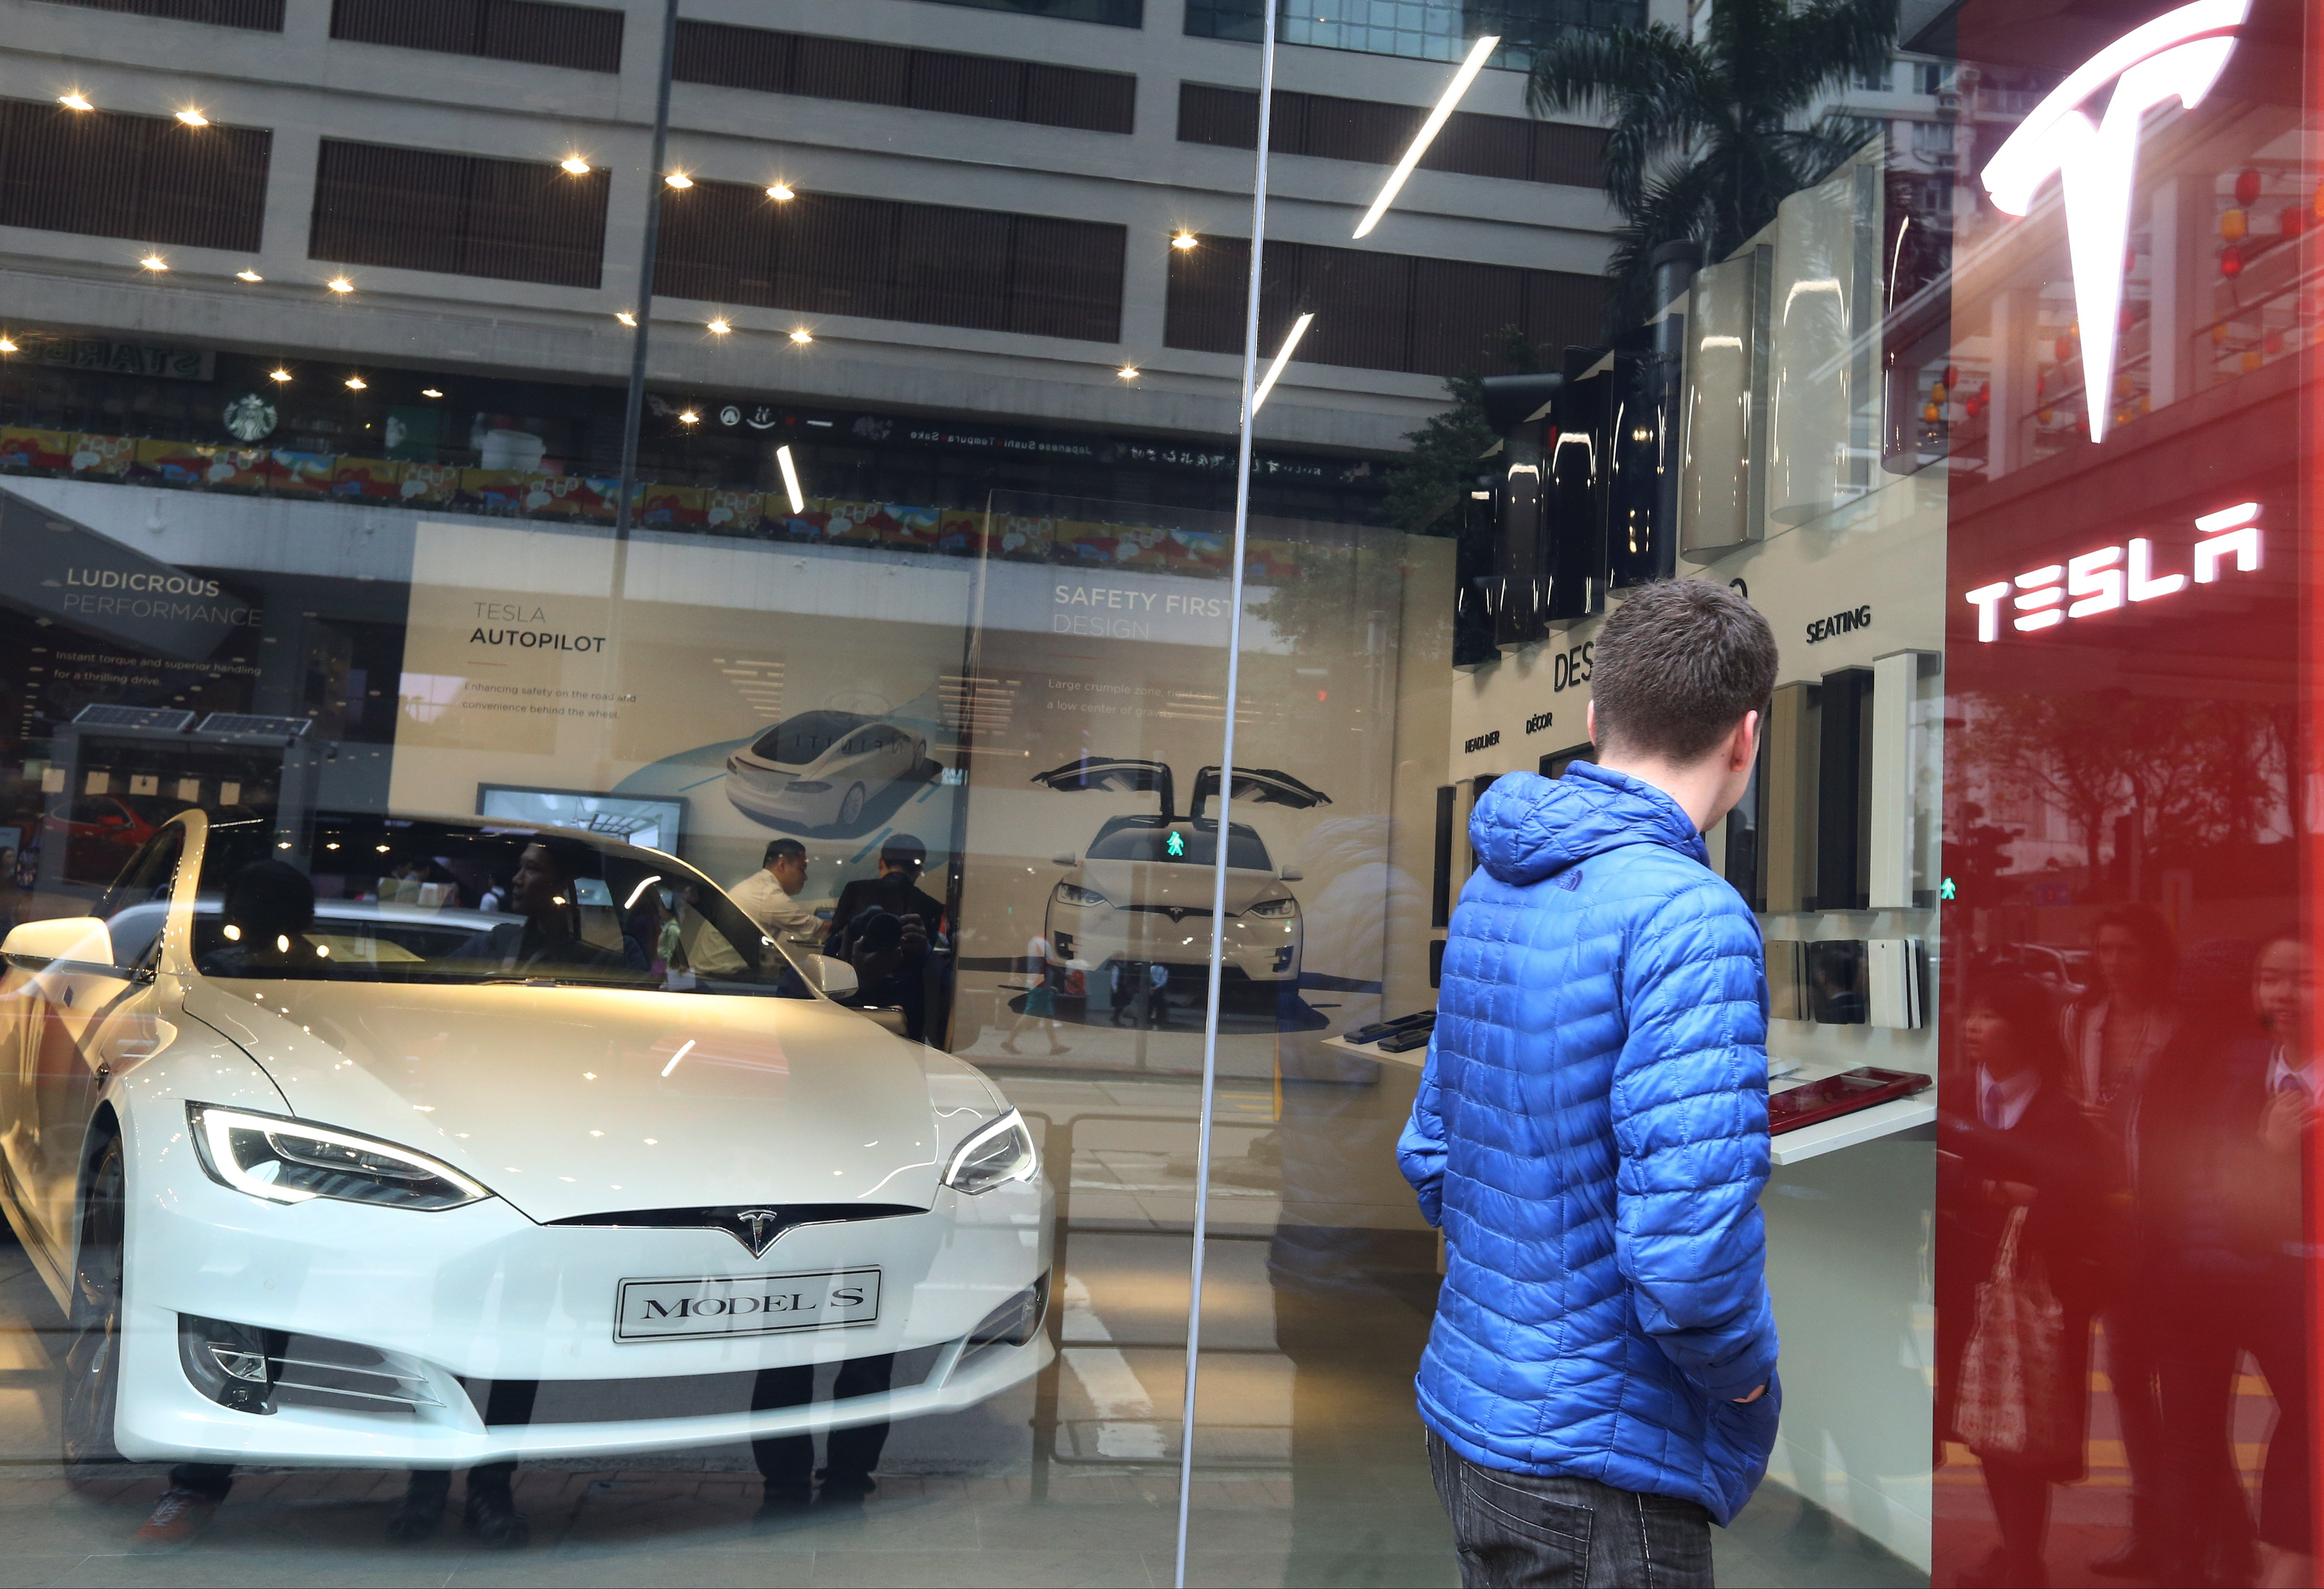 Tesla to reduce hong kong operations if city refuses to